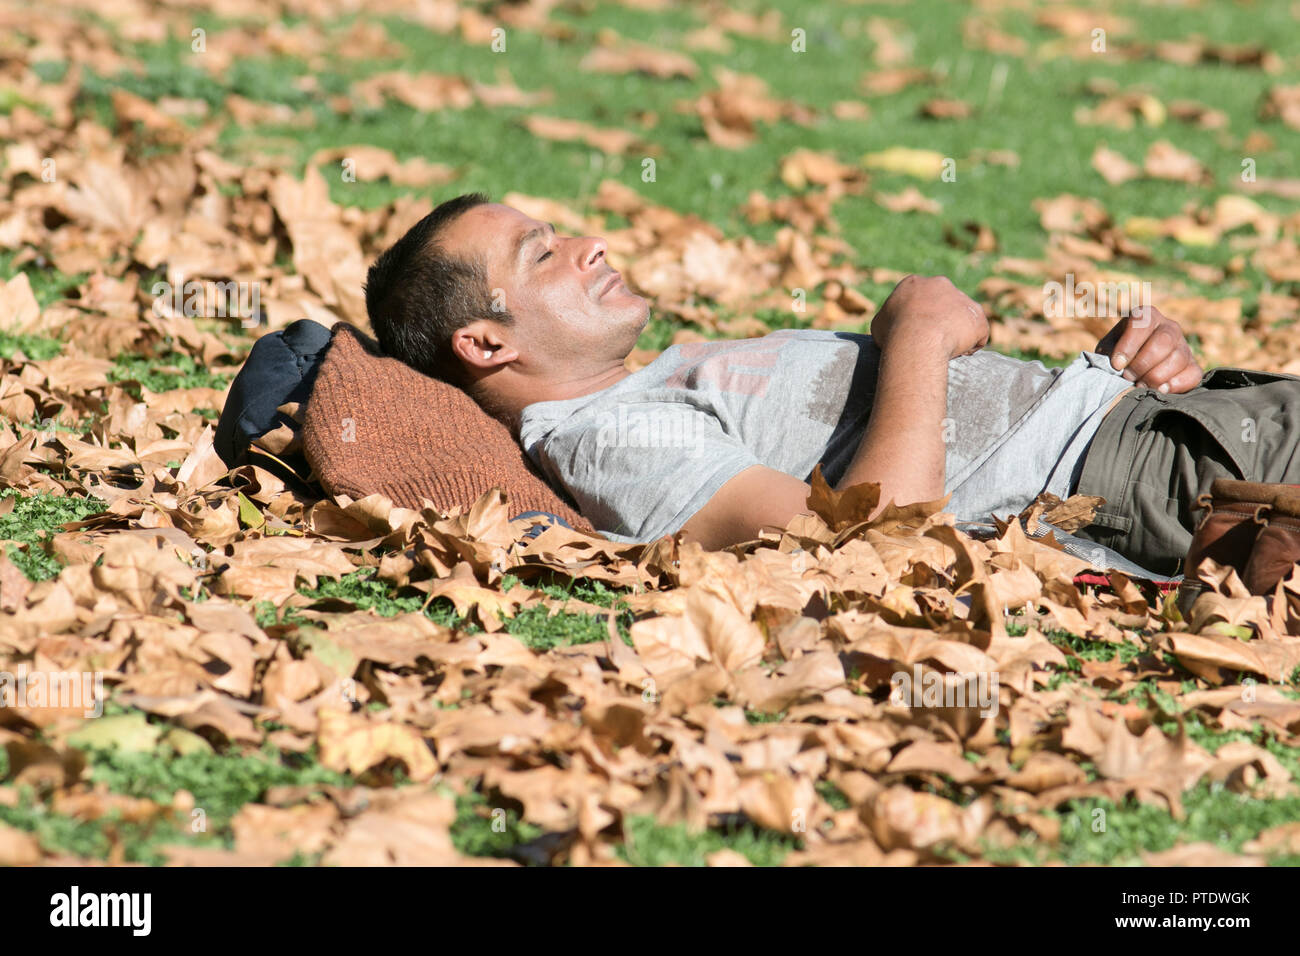 London UK. 9th October 2018. A man catching a nap in the afternoon sunshine on the park grass covered with autumn leaves  in Saint James's Park Credit: amer ghazzal/Alamy Live News - Stock Image